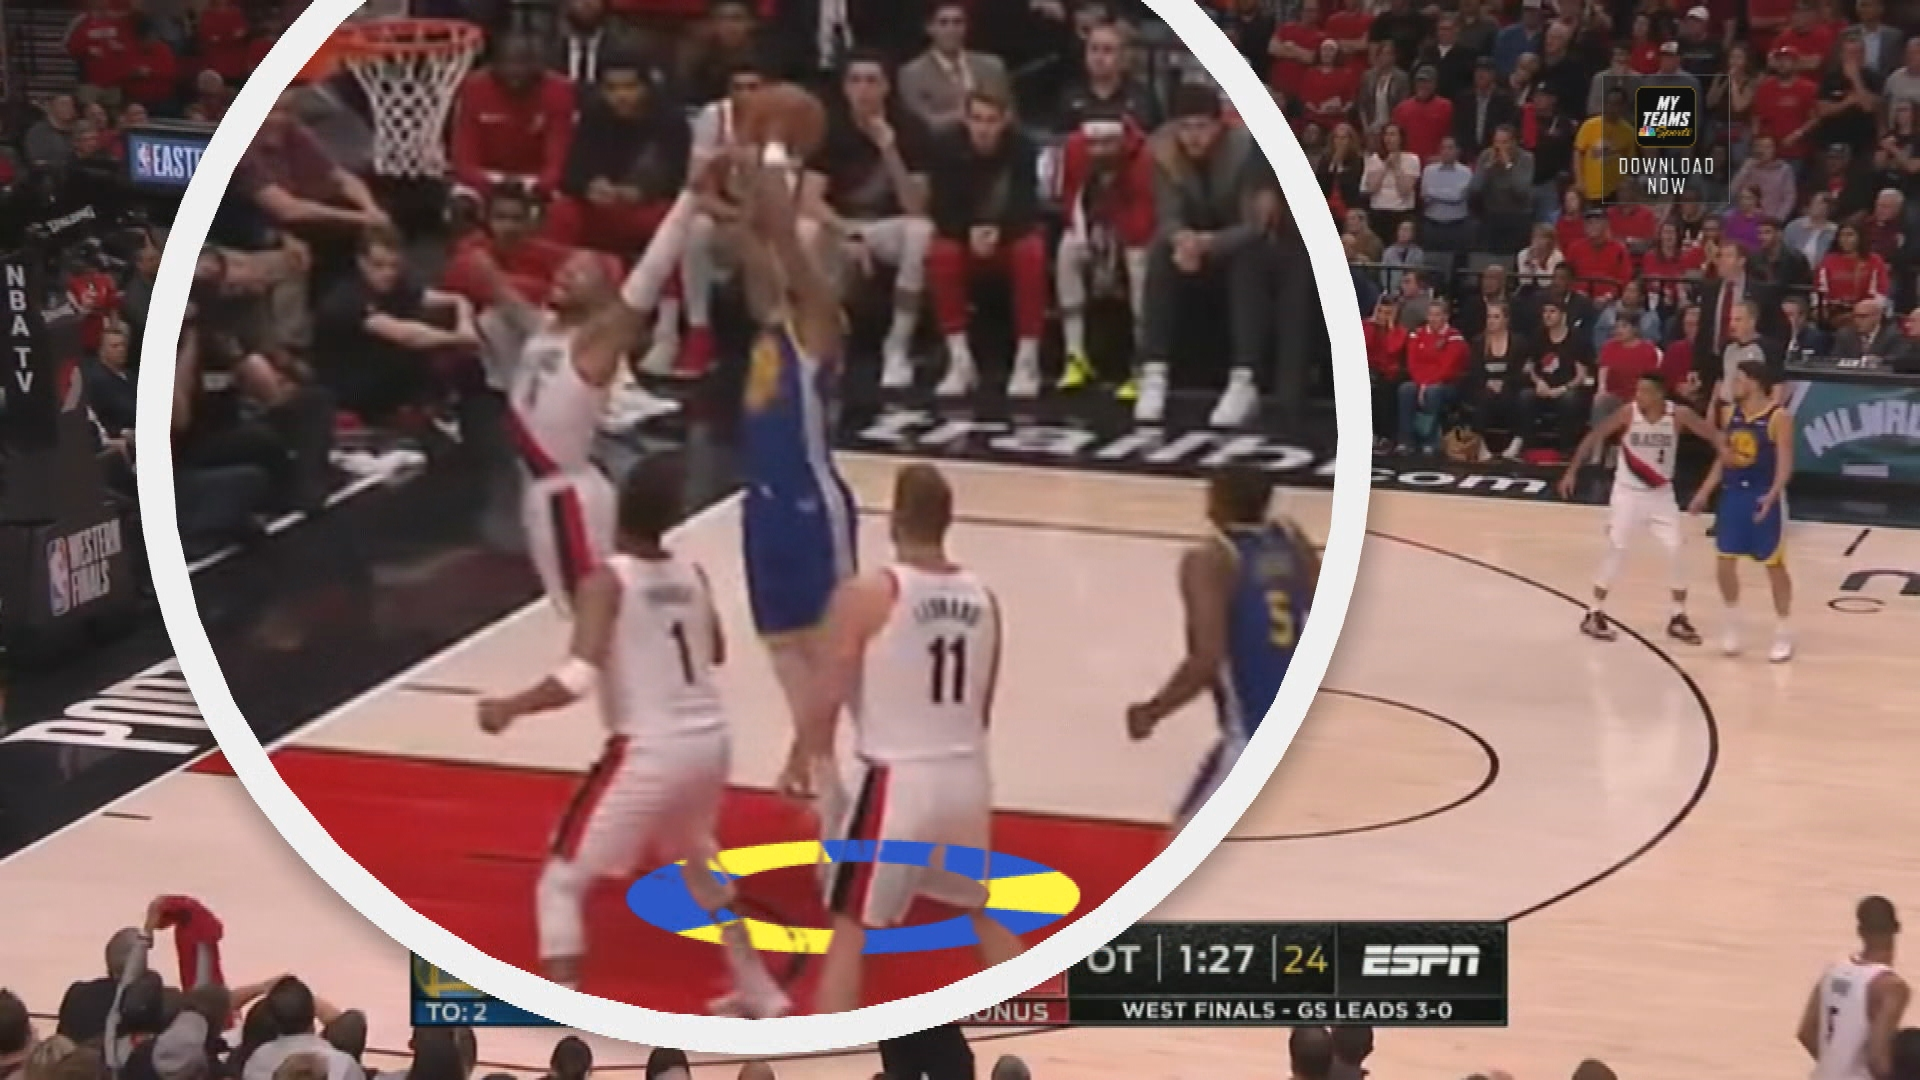 Garry St. Jean demonstrates how Warriors came up clutch in OT vs. Blazers